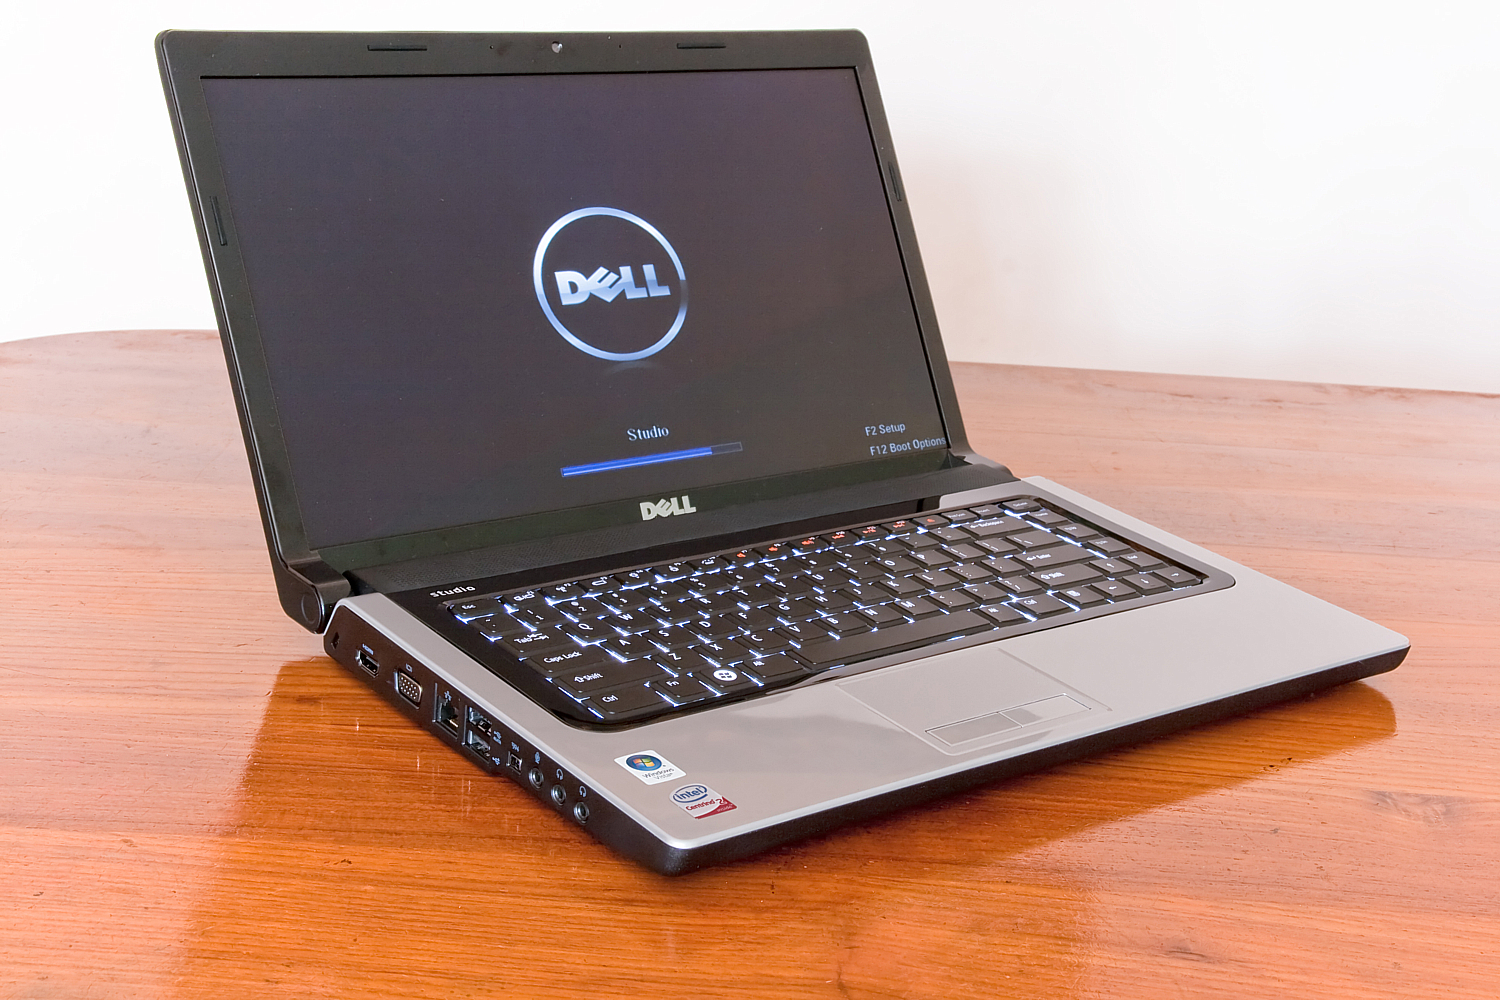 Dell Studio Laptop Wallpaper